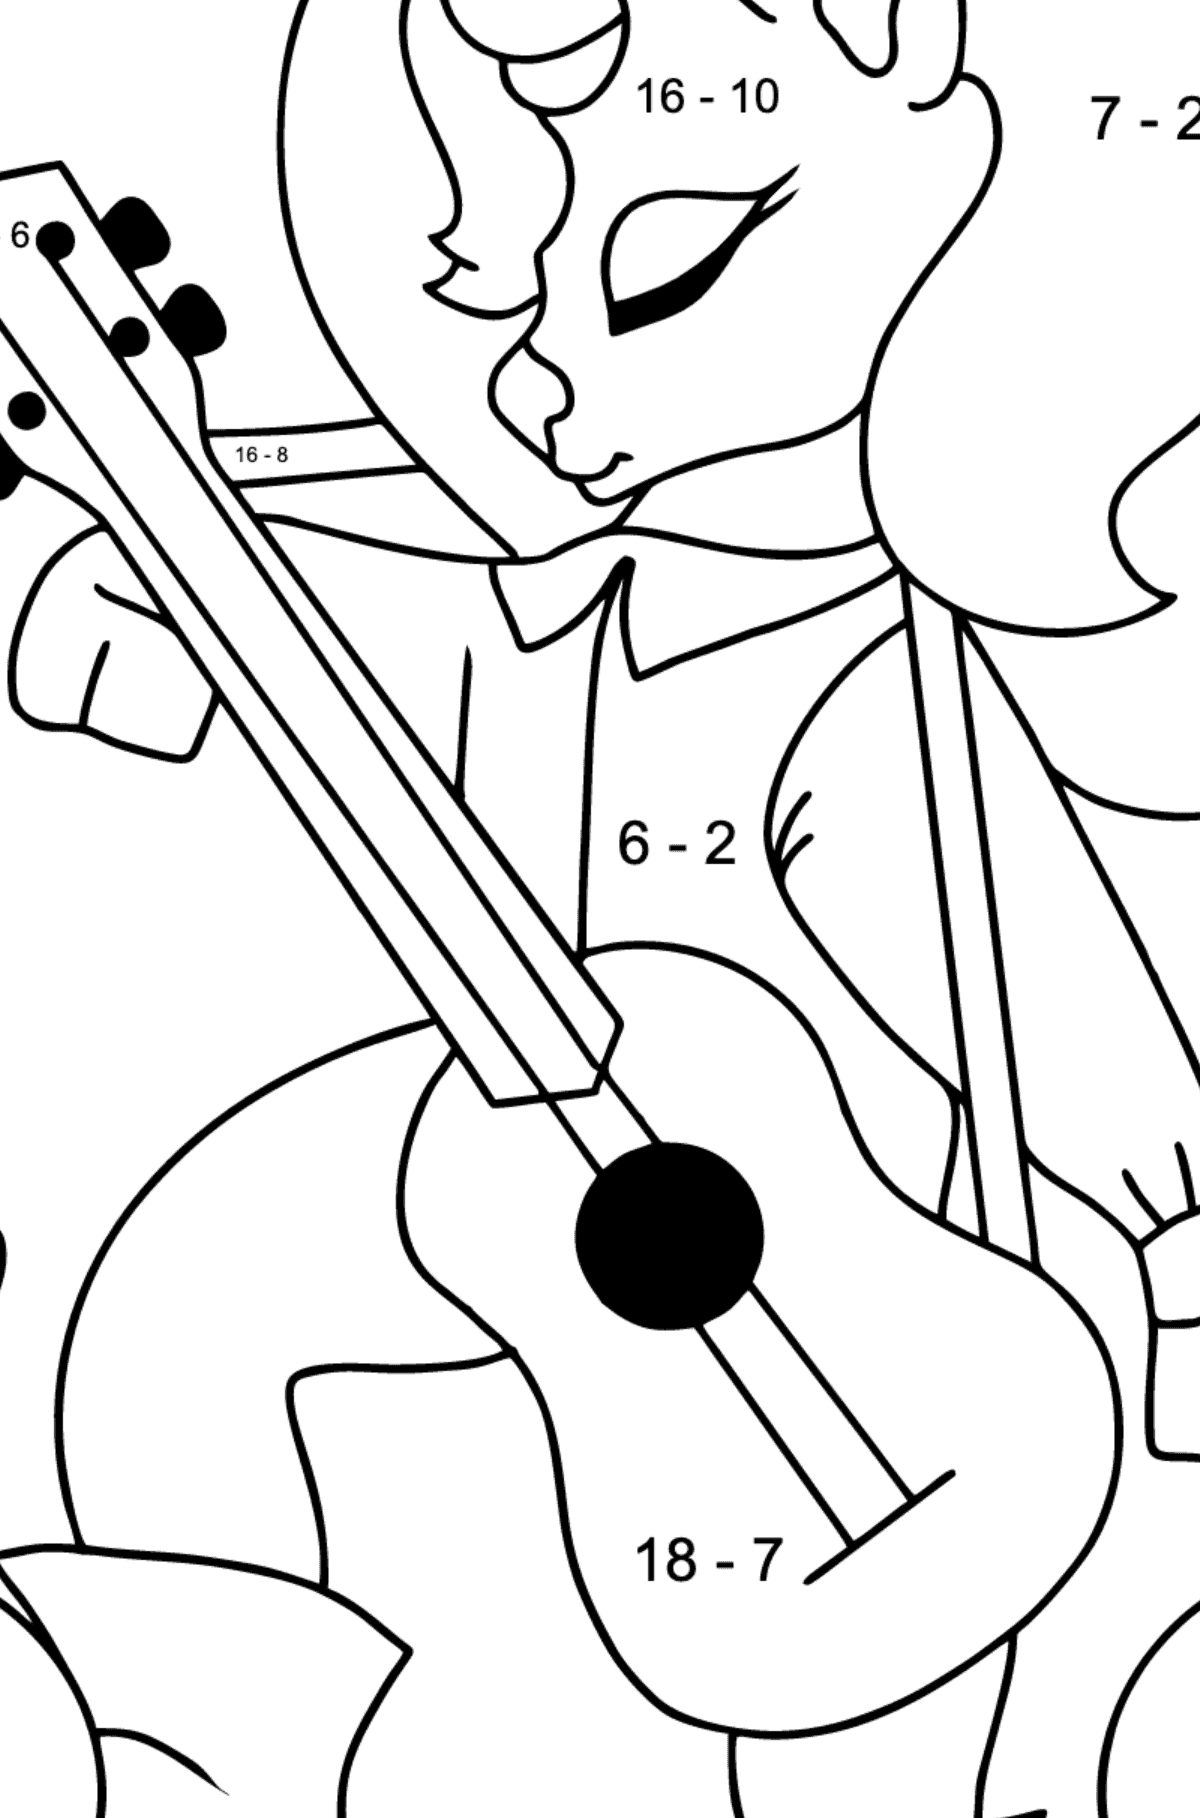 Simple Coloring Page - A Unicorn with a Guitar for Children  - Color by Number Substraction